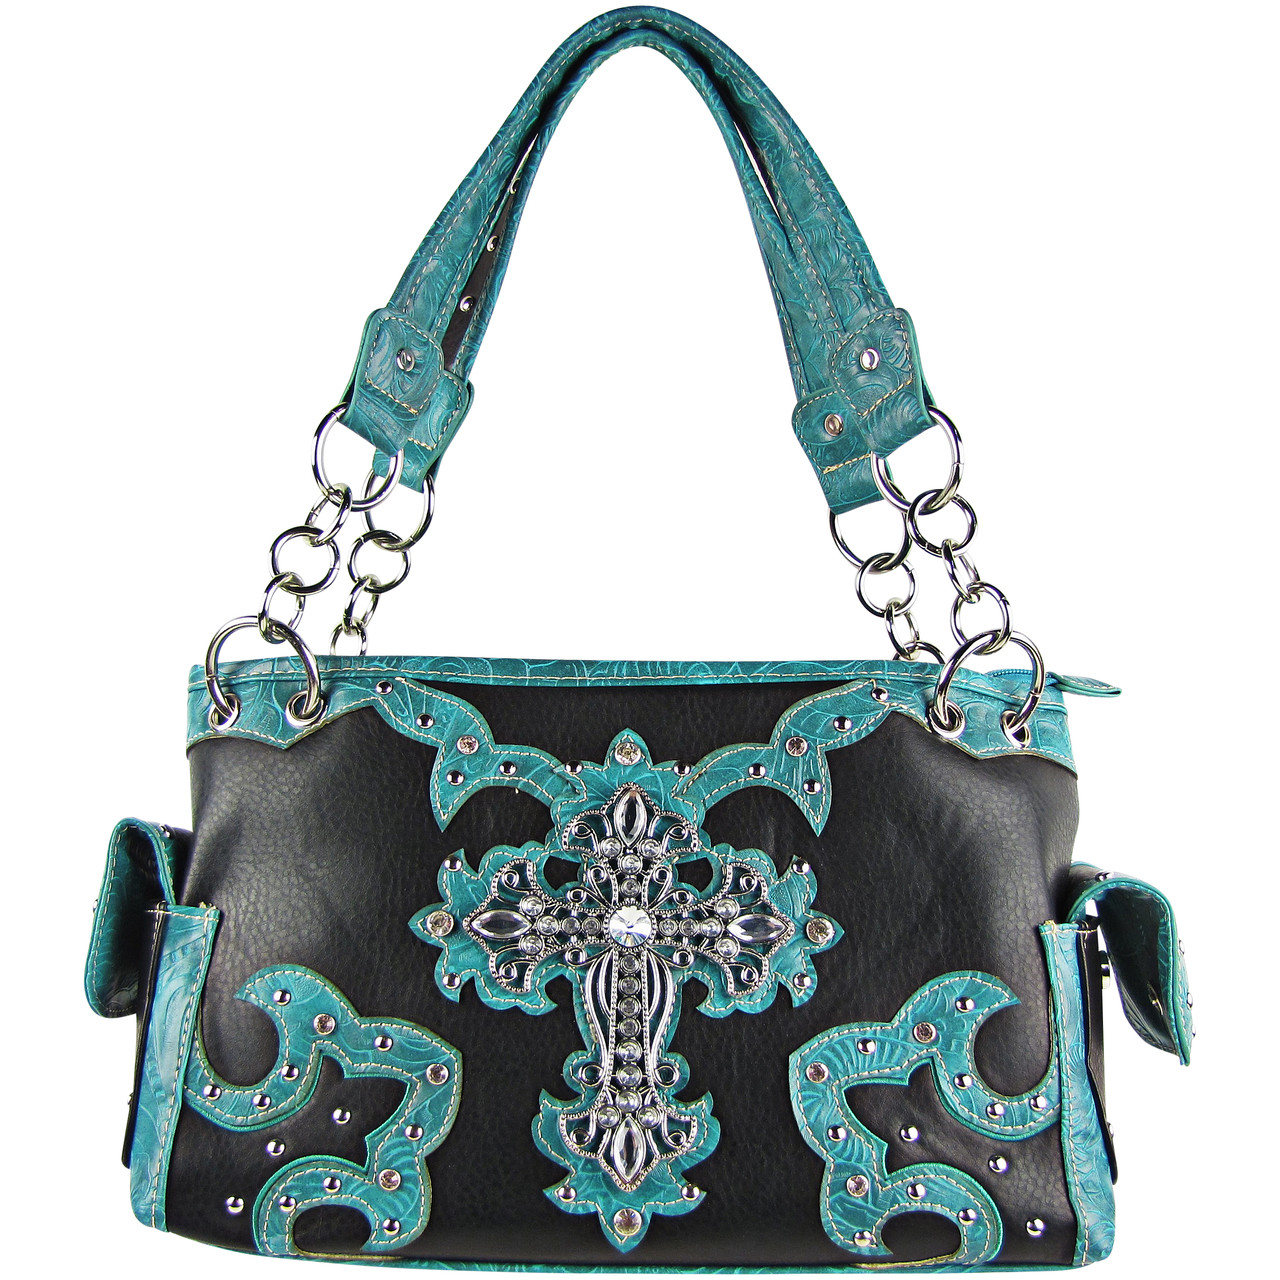 TURQUOISE WESTERN STUDDED RHINESTONE CROSS DESIGN LOOK SHOULDER HANDBAGTURQUOISE WESTERN STUDDED RHINESTONE CROSS DESIGN LOOK SHOULDER HANDBAG HB1-KW15RTRQ